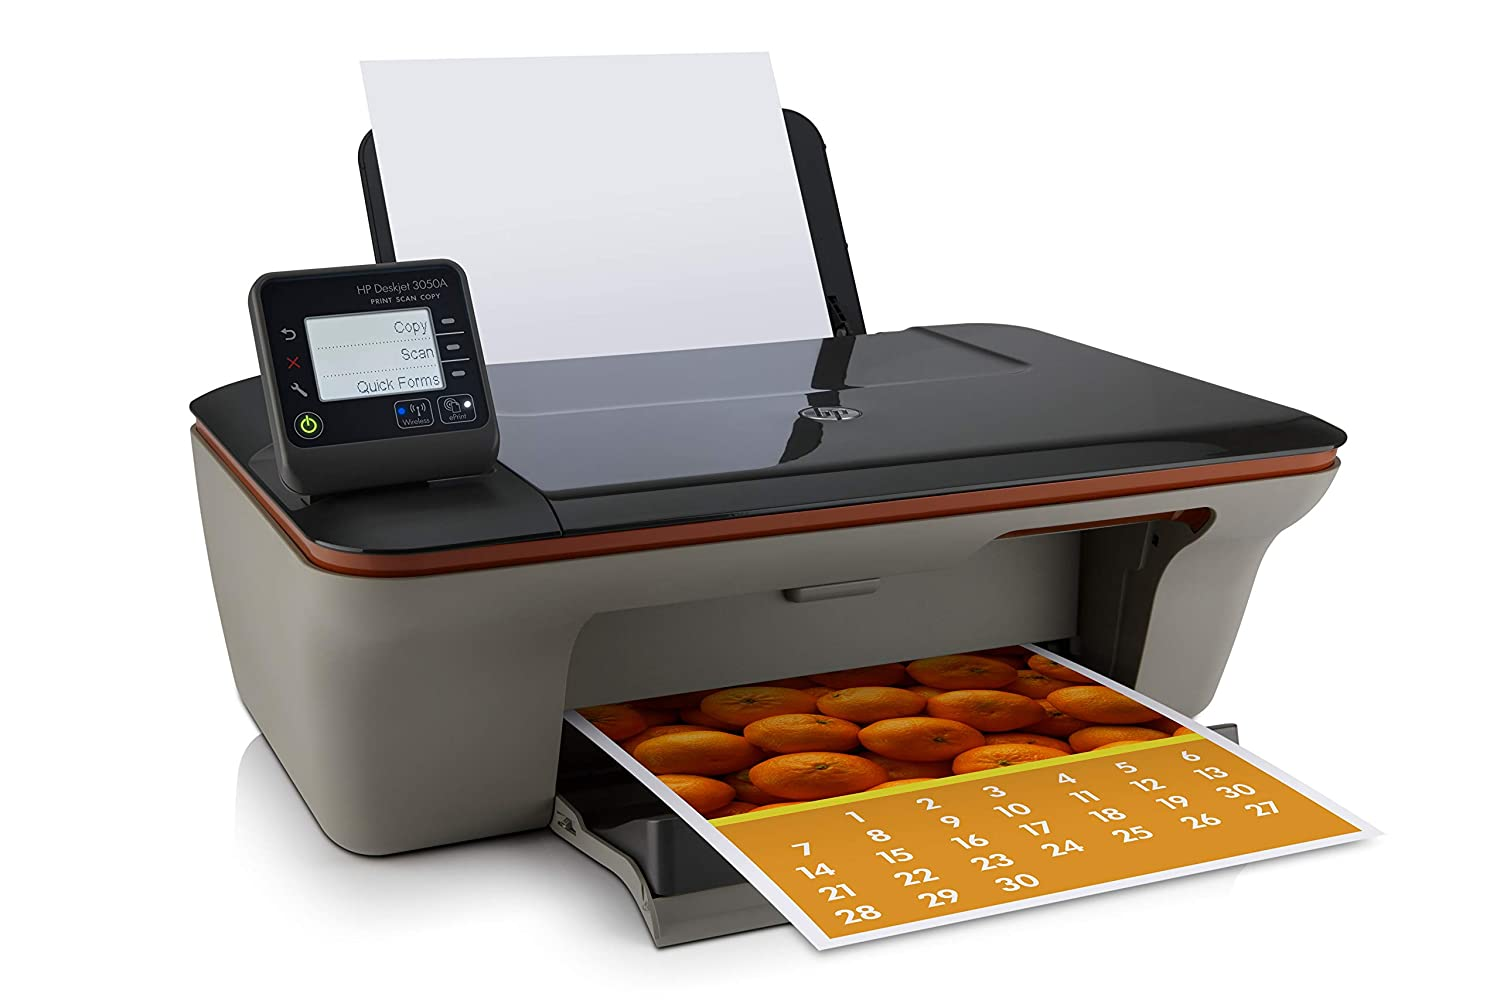 Hewlett Packard 3050A Wireless All-in-One Color Photo Printer